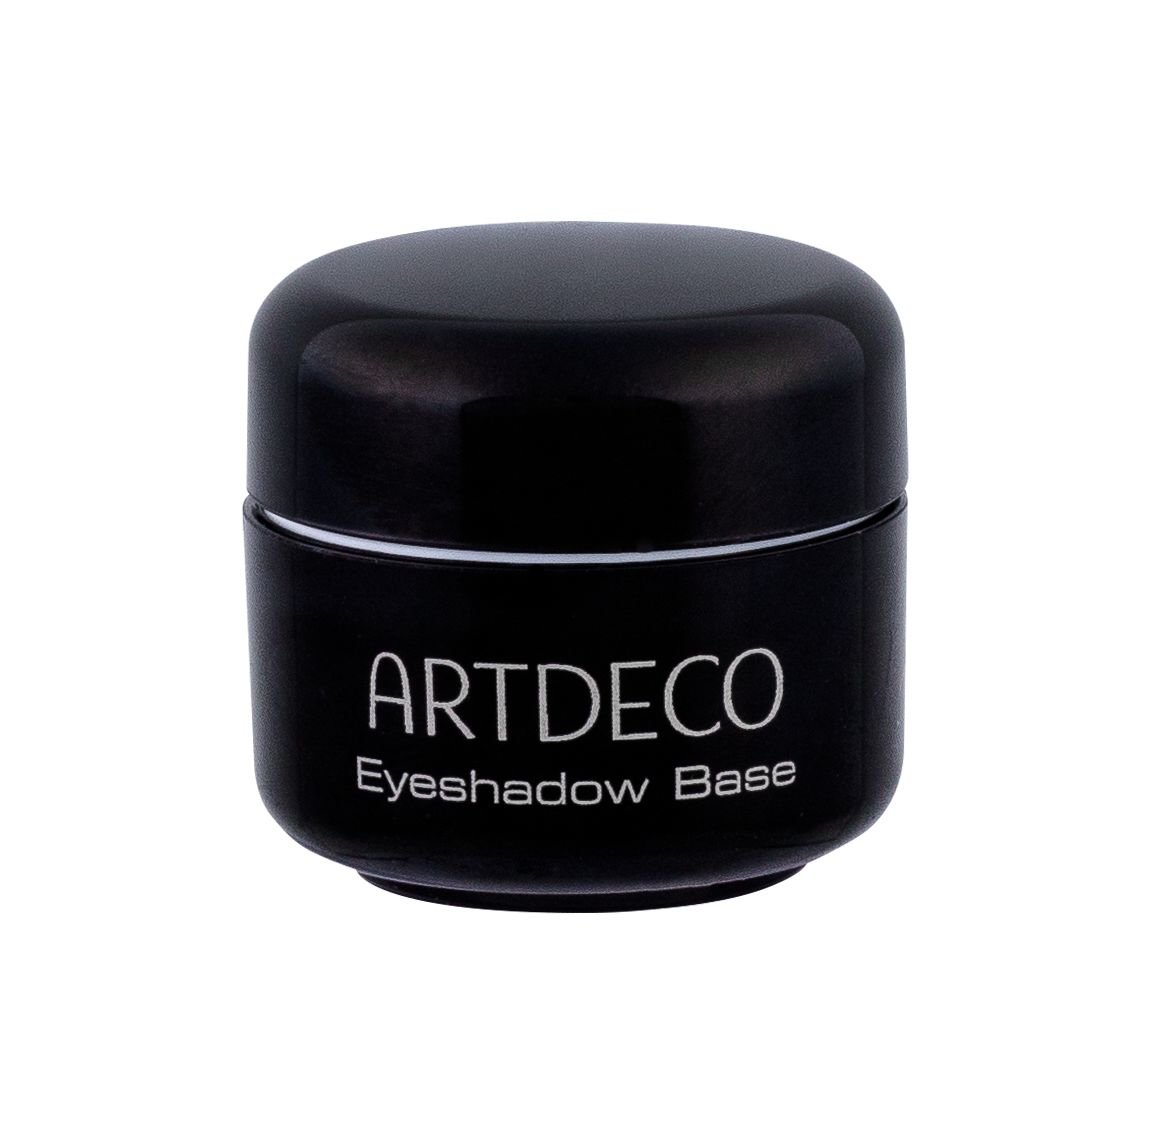 Artdeco Eyeshadow Base Eyeshadow Base 5ml